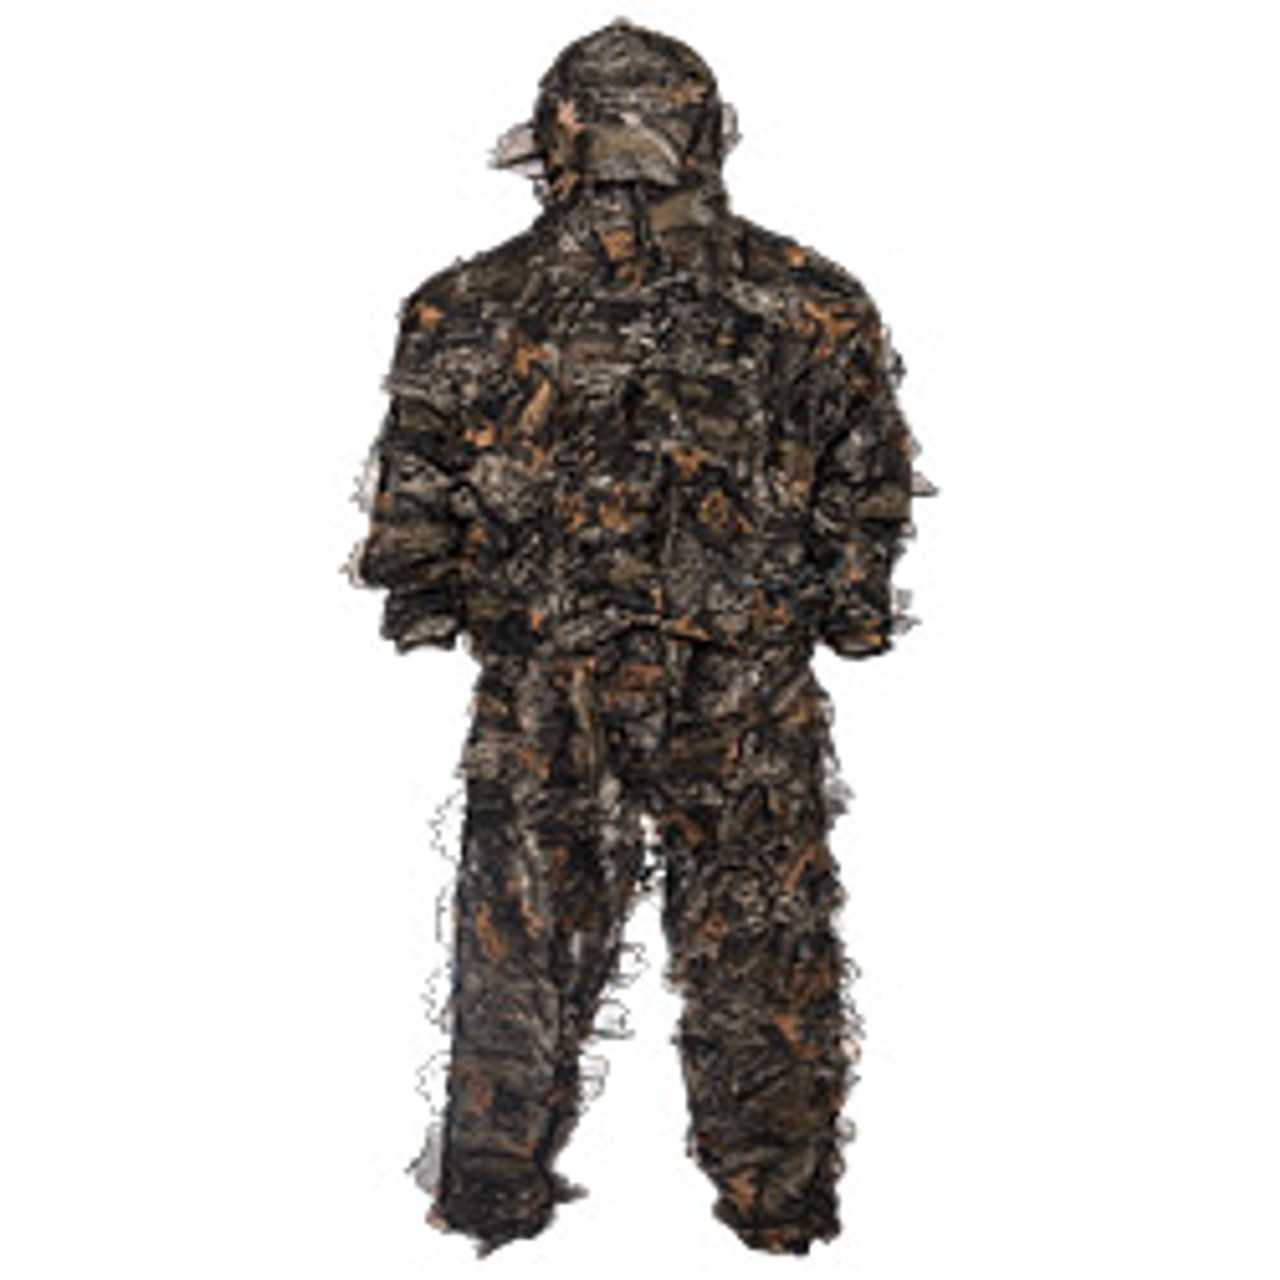 Camo Leafy Suit by World Famous Sports